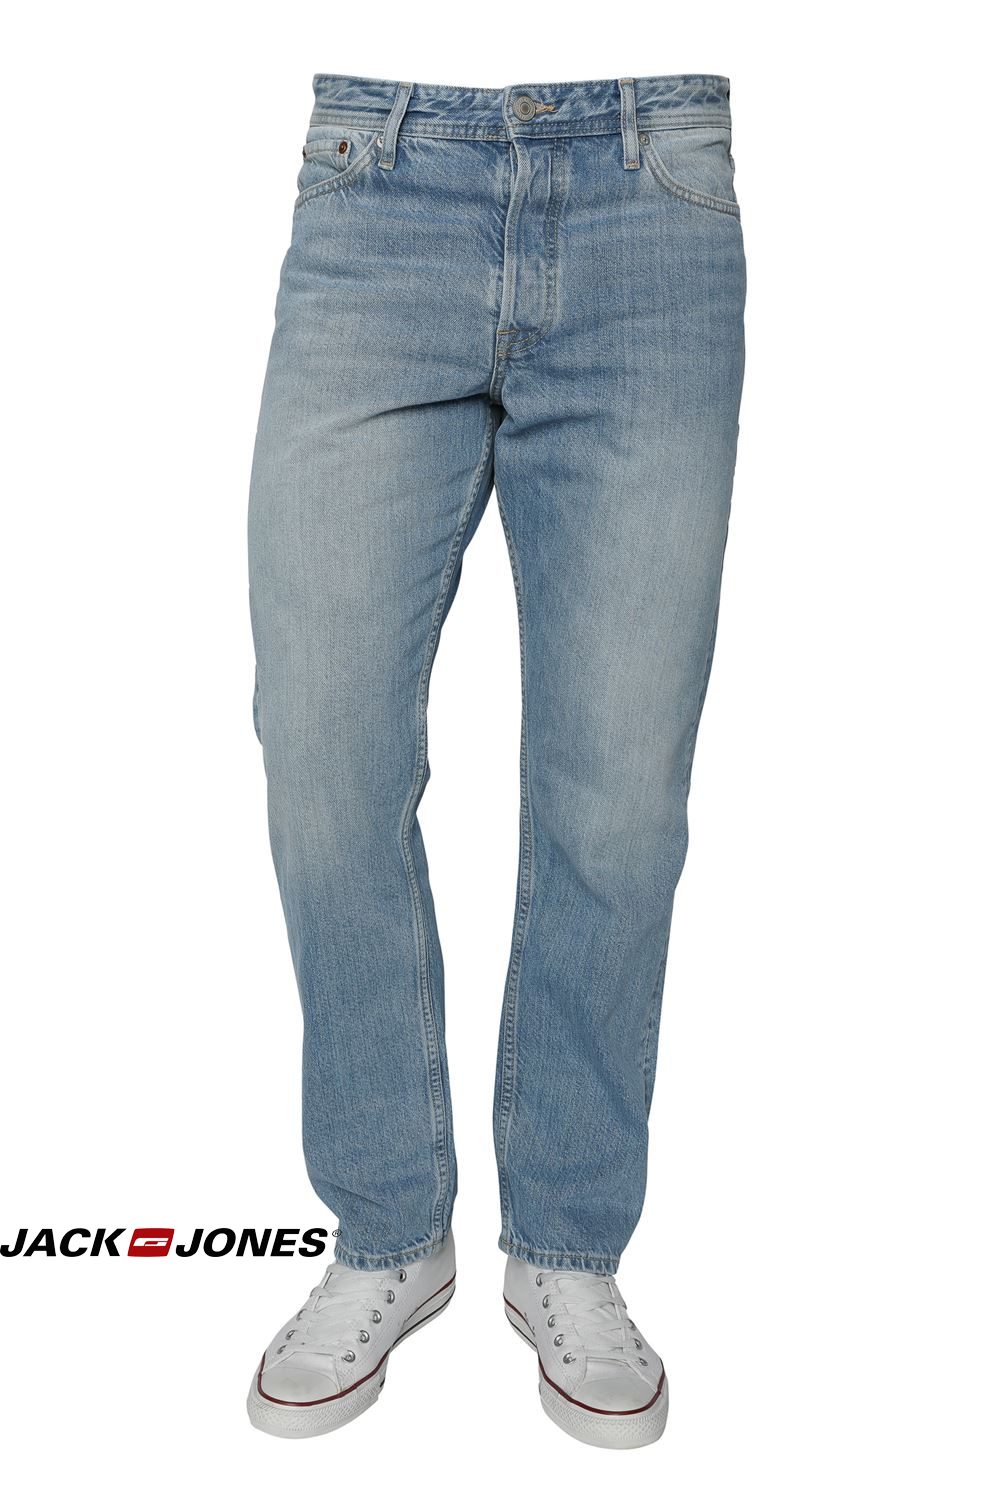 chris loose jack & jones jeans